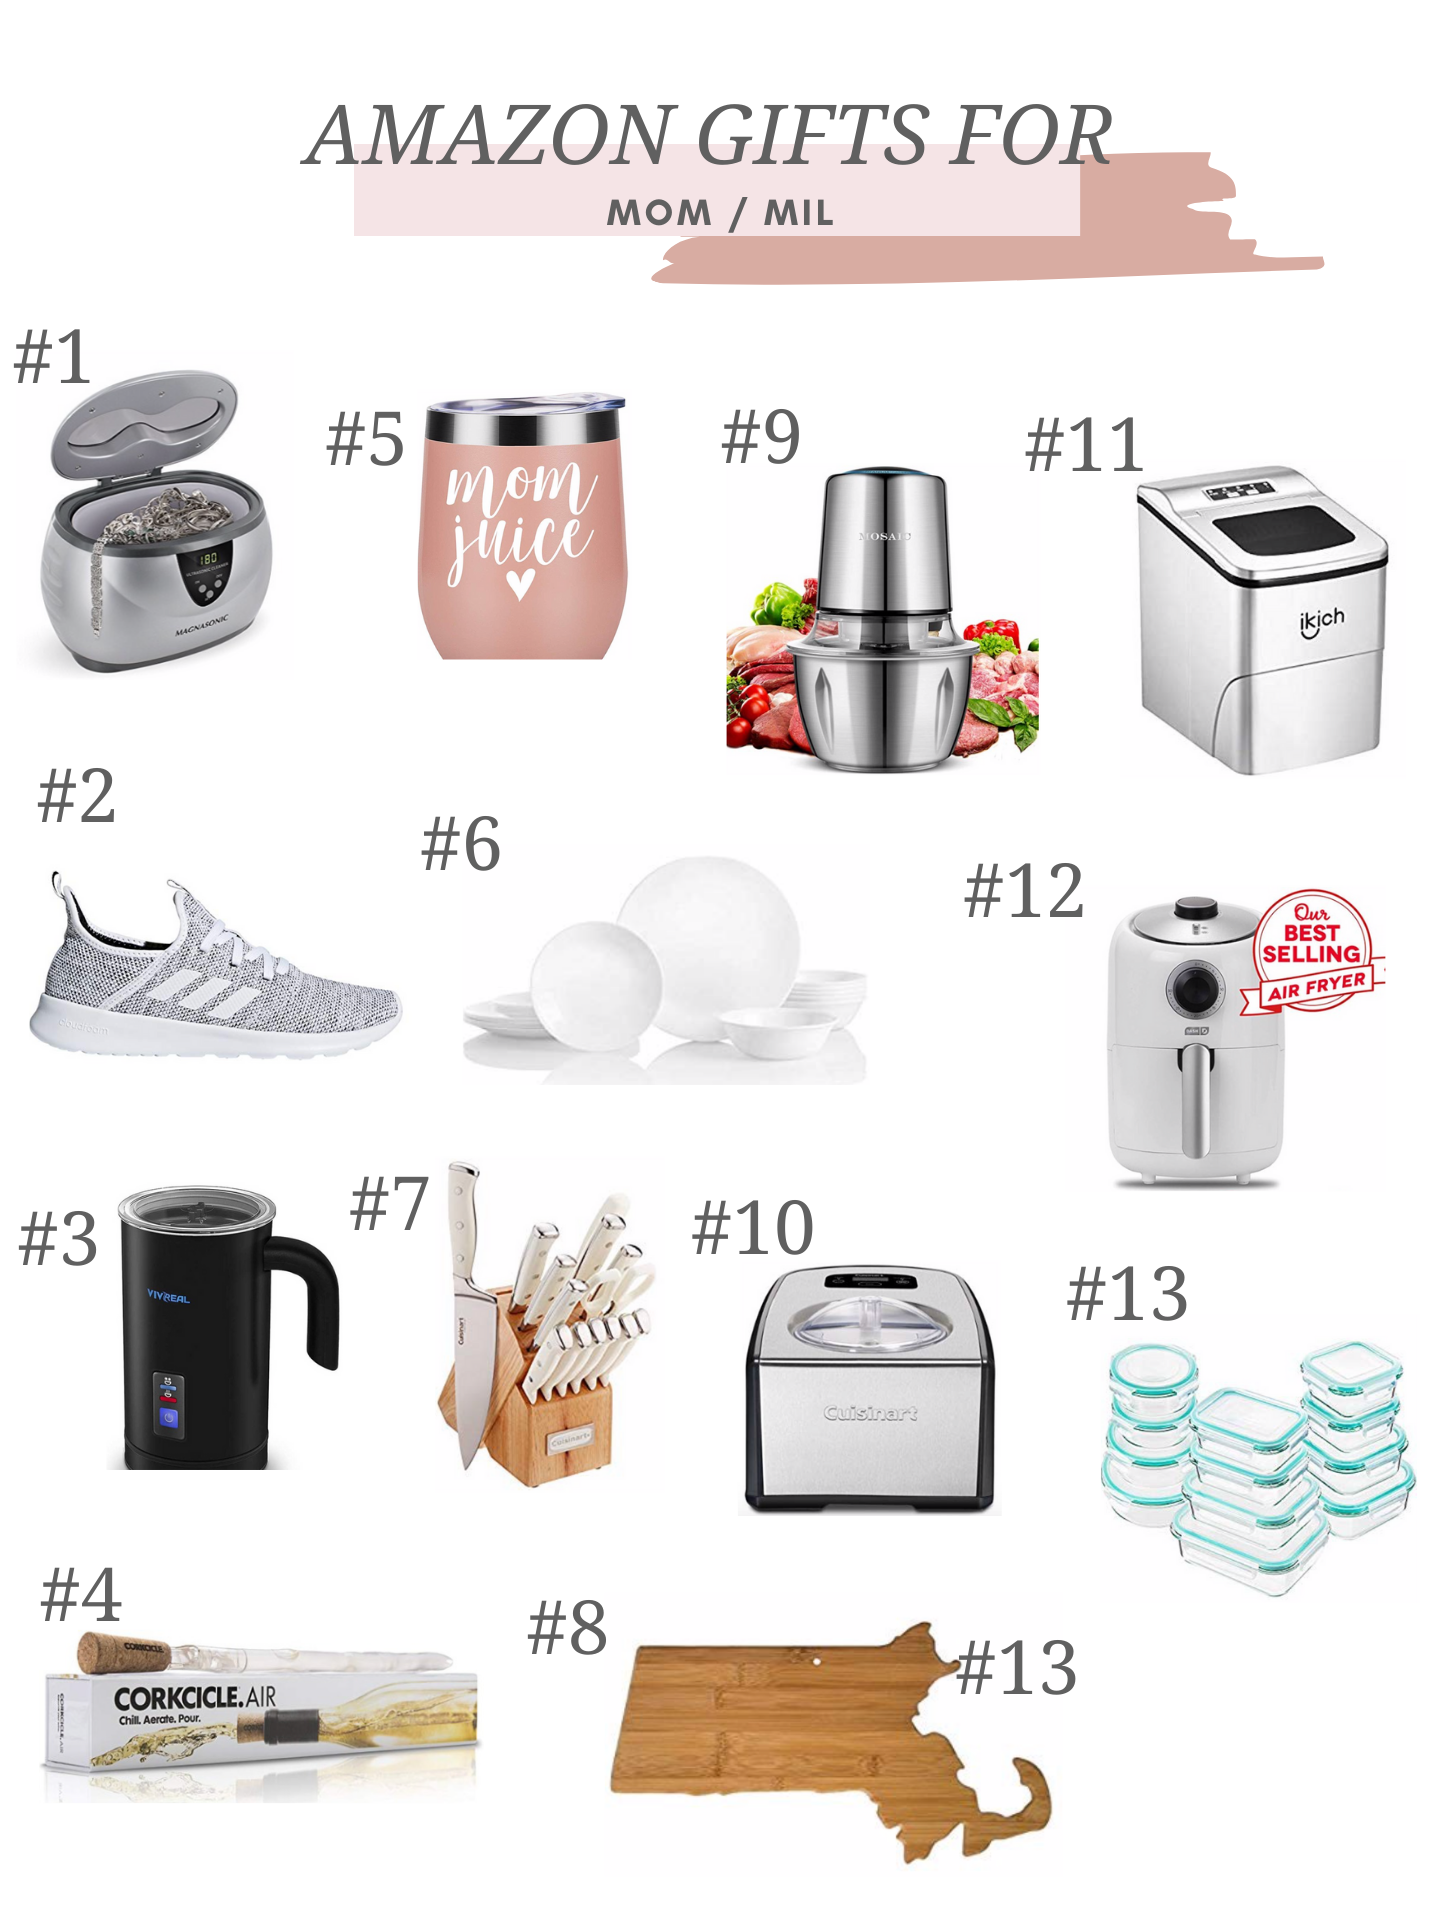 amazon gifts for mom/ MIL